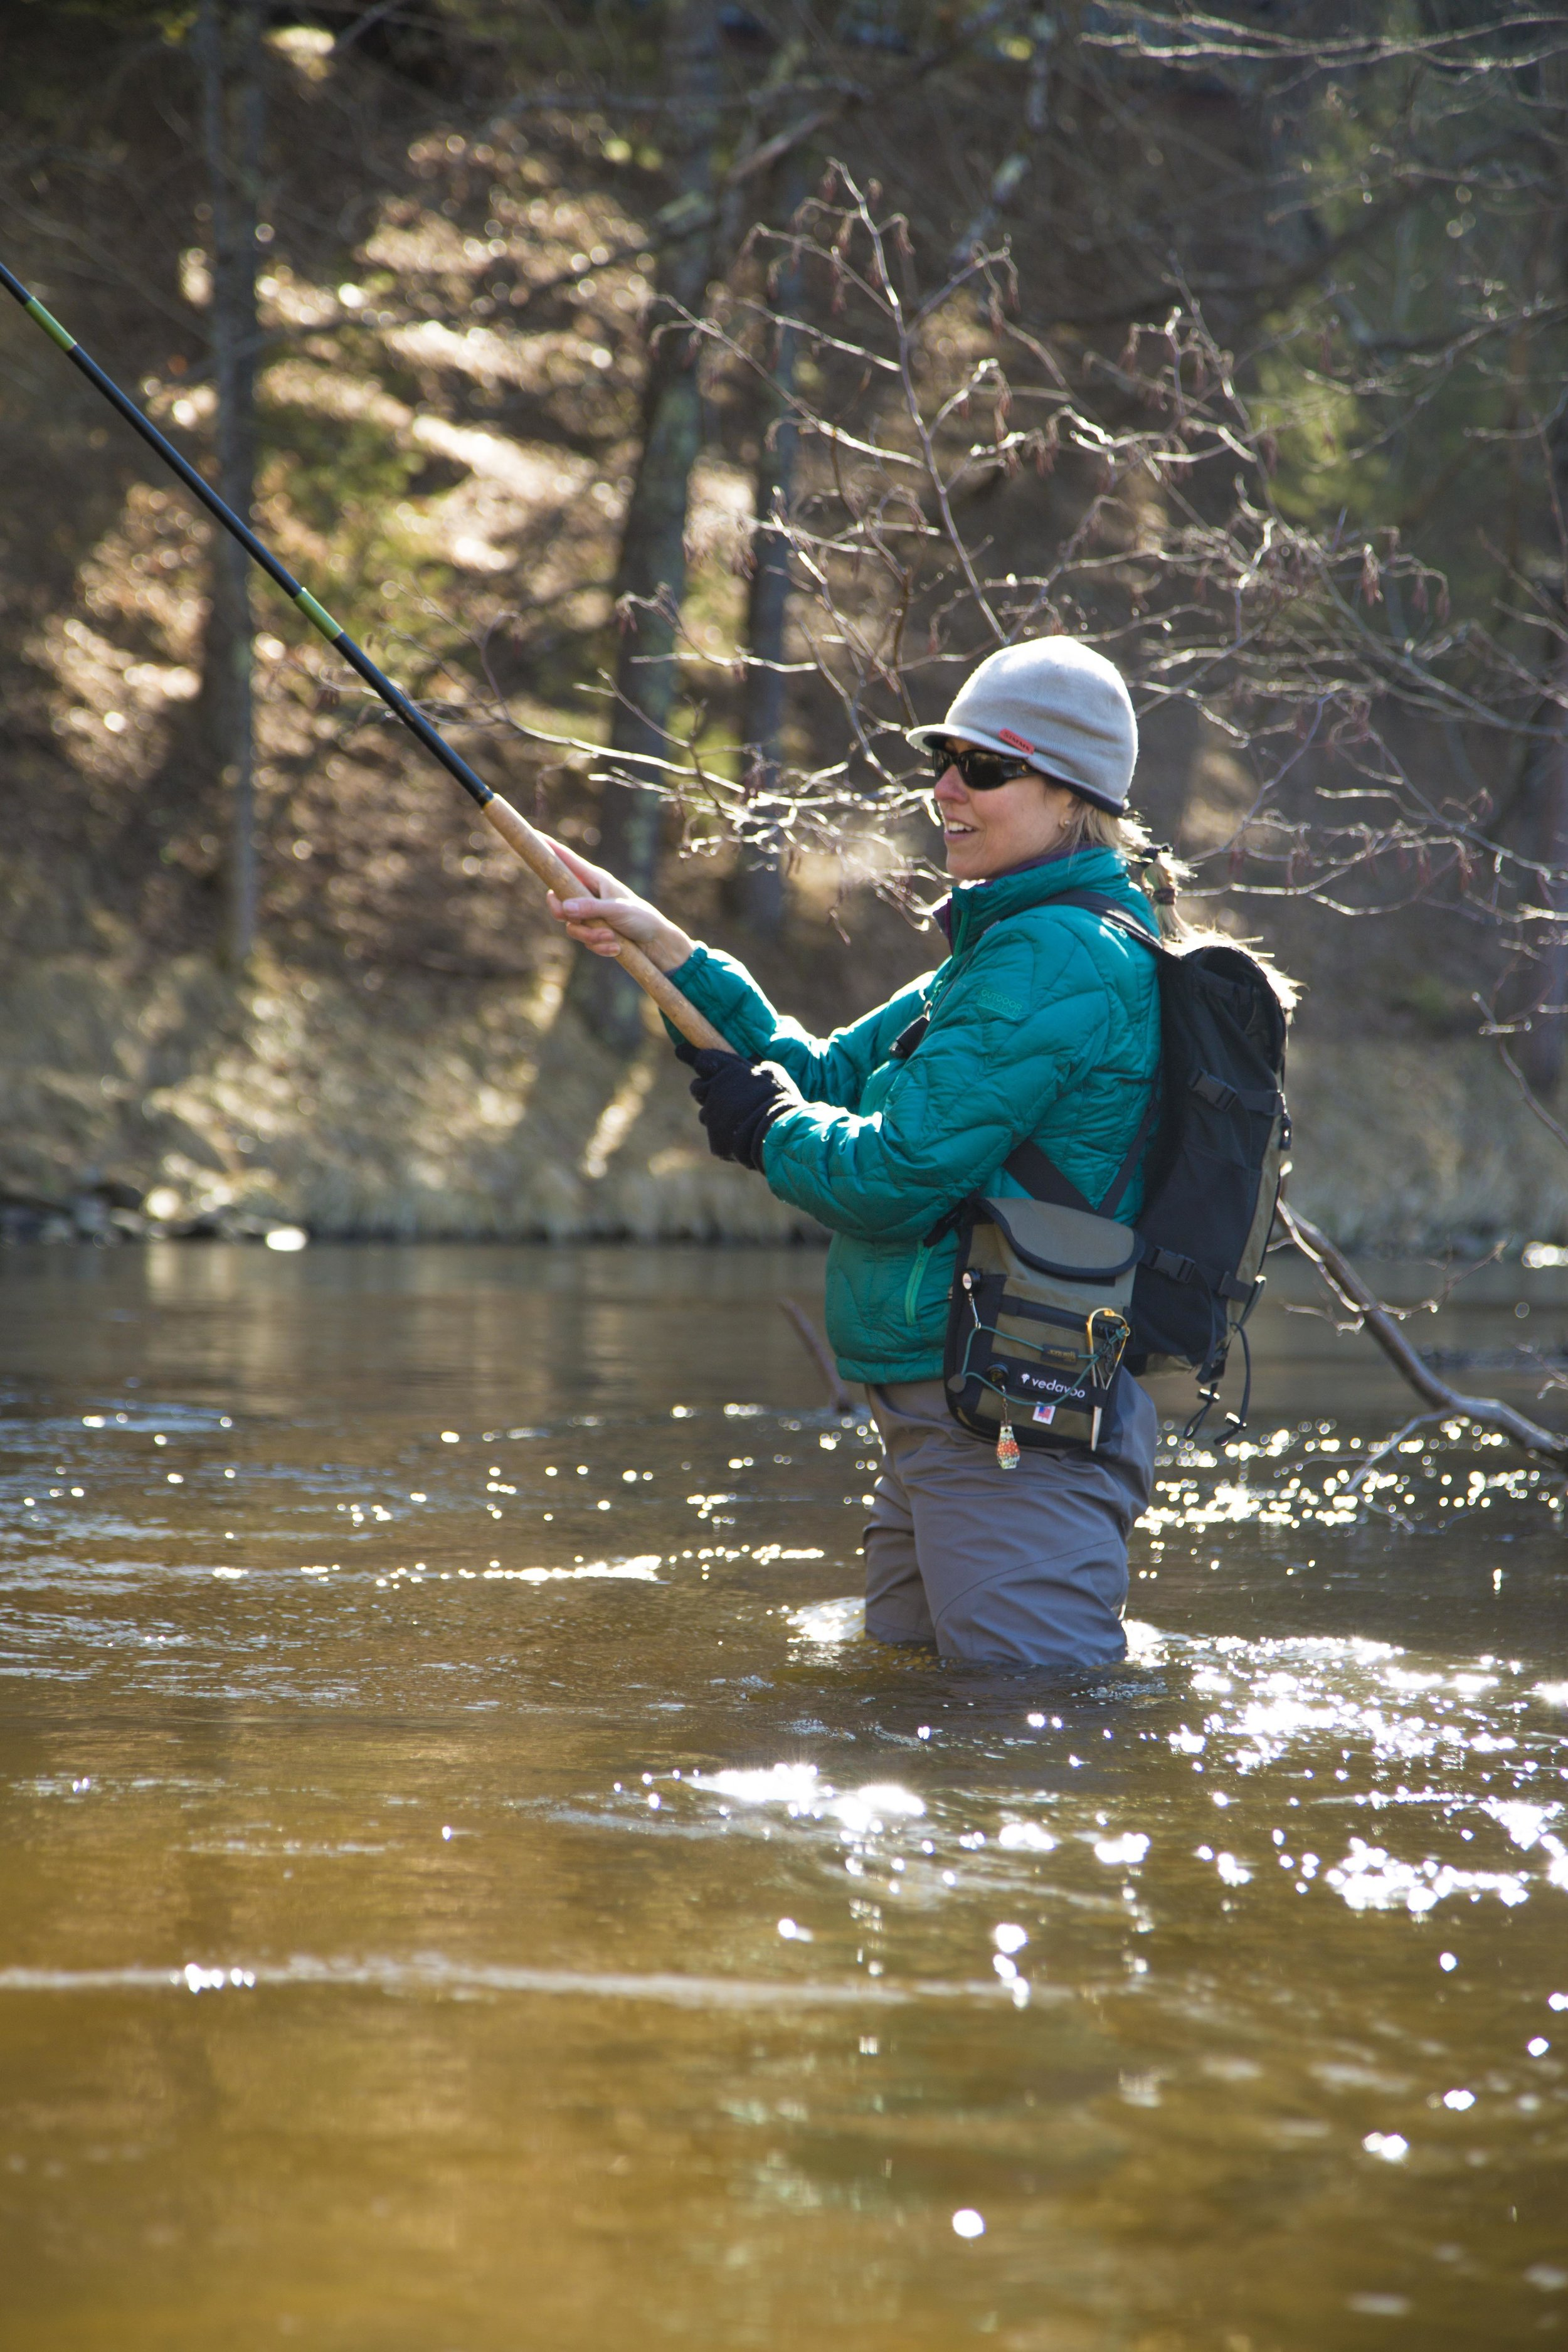 Fishing Tenkara rods for Steelhead in my home river: The Perf Marquette.